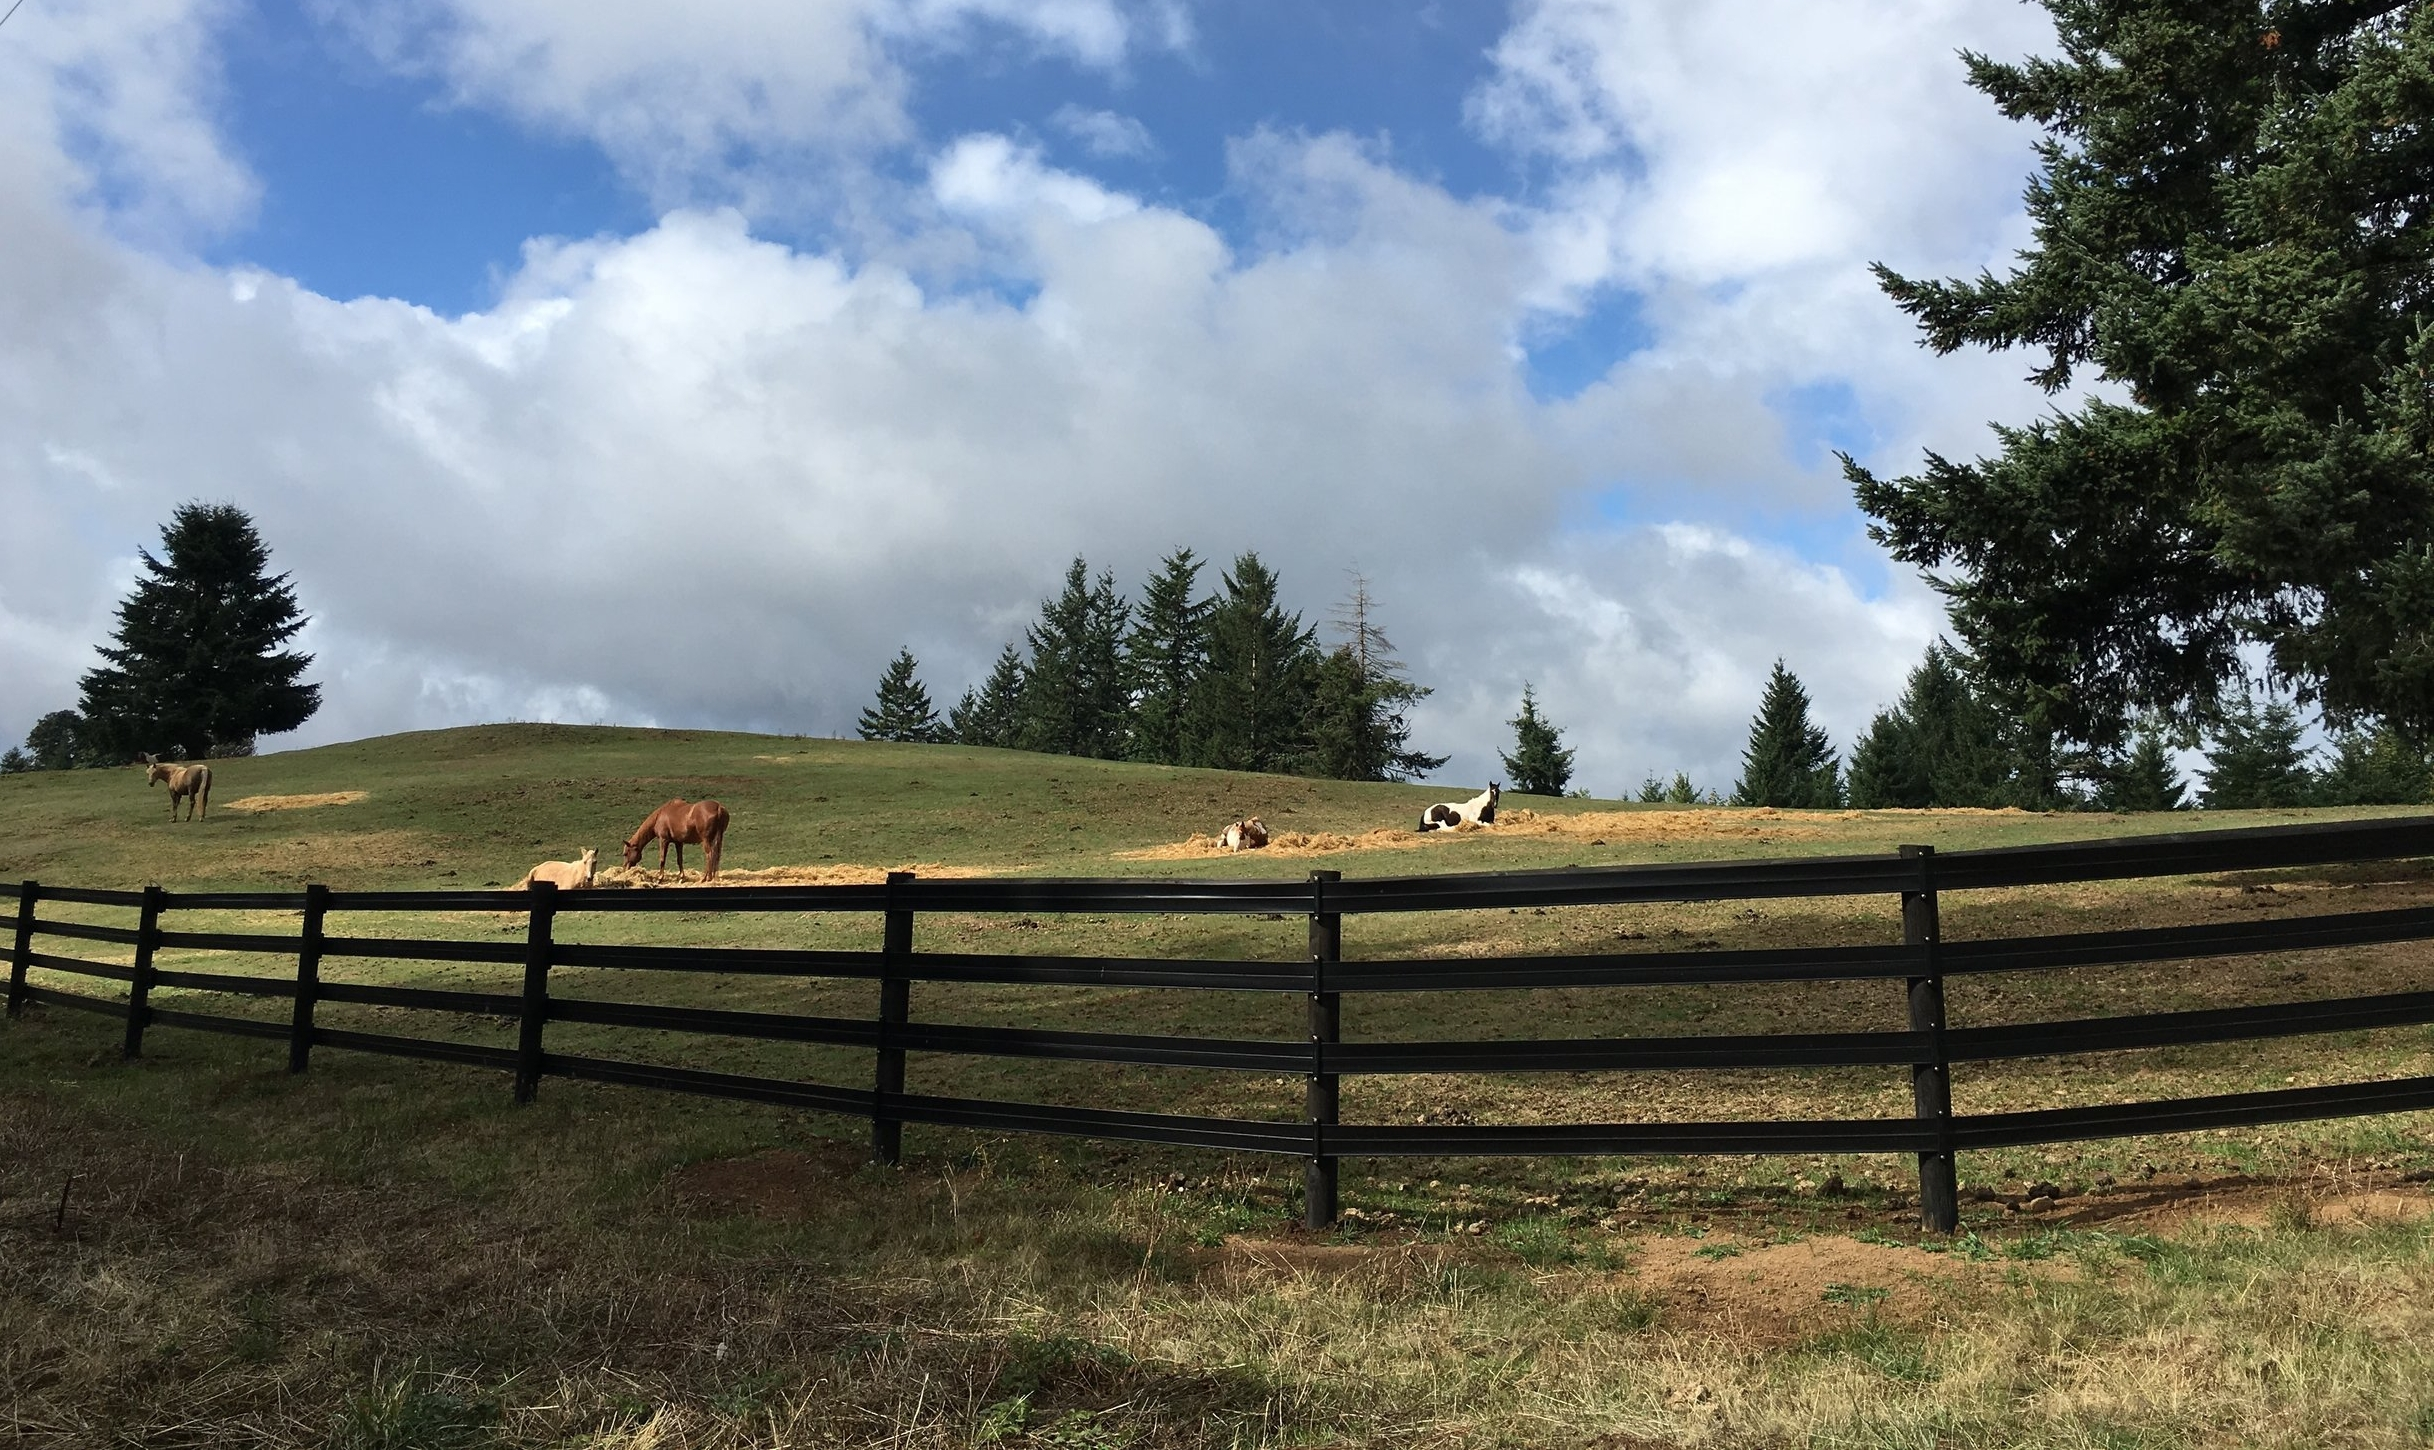 Our mares relaxing and enjoying their day outside in the pasture.